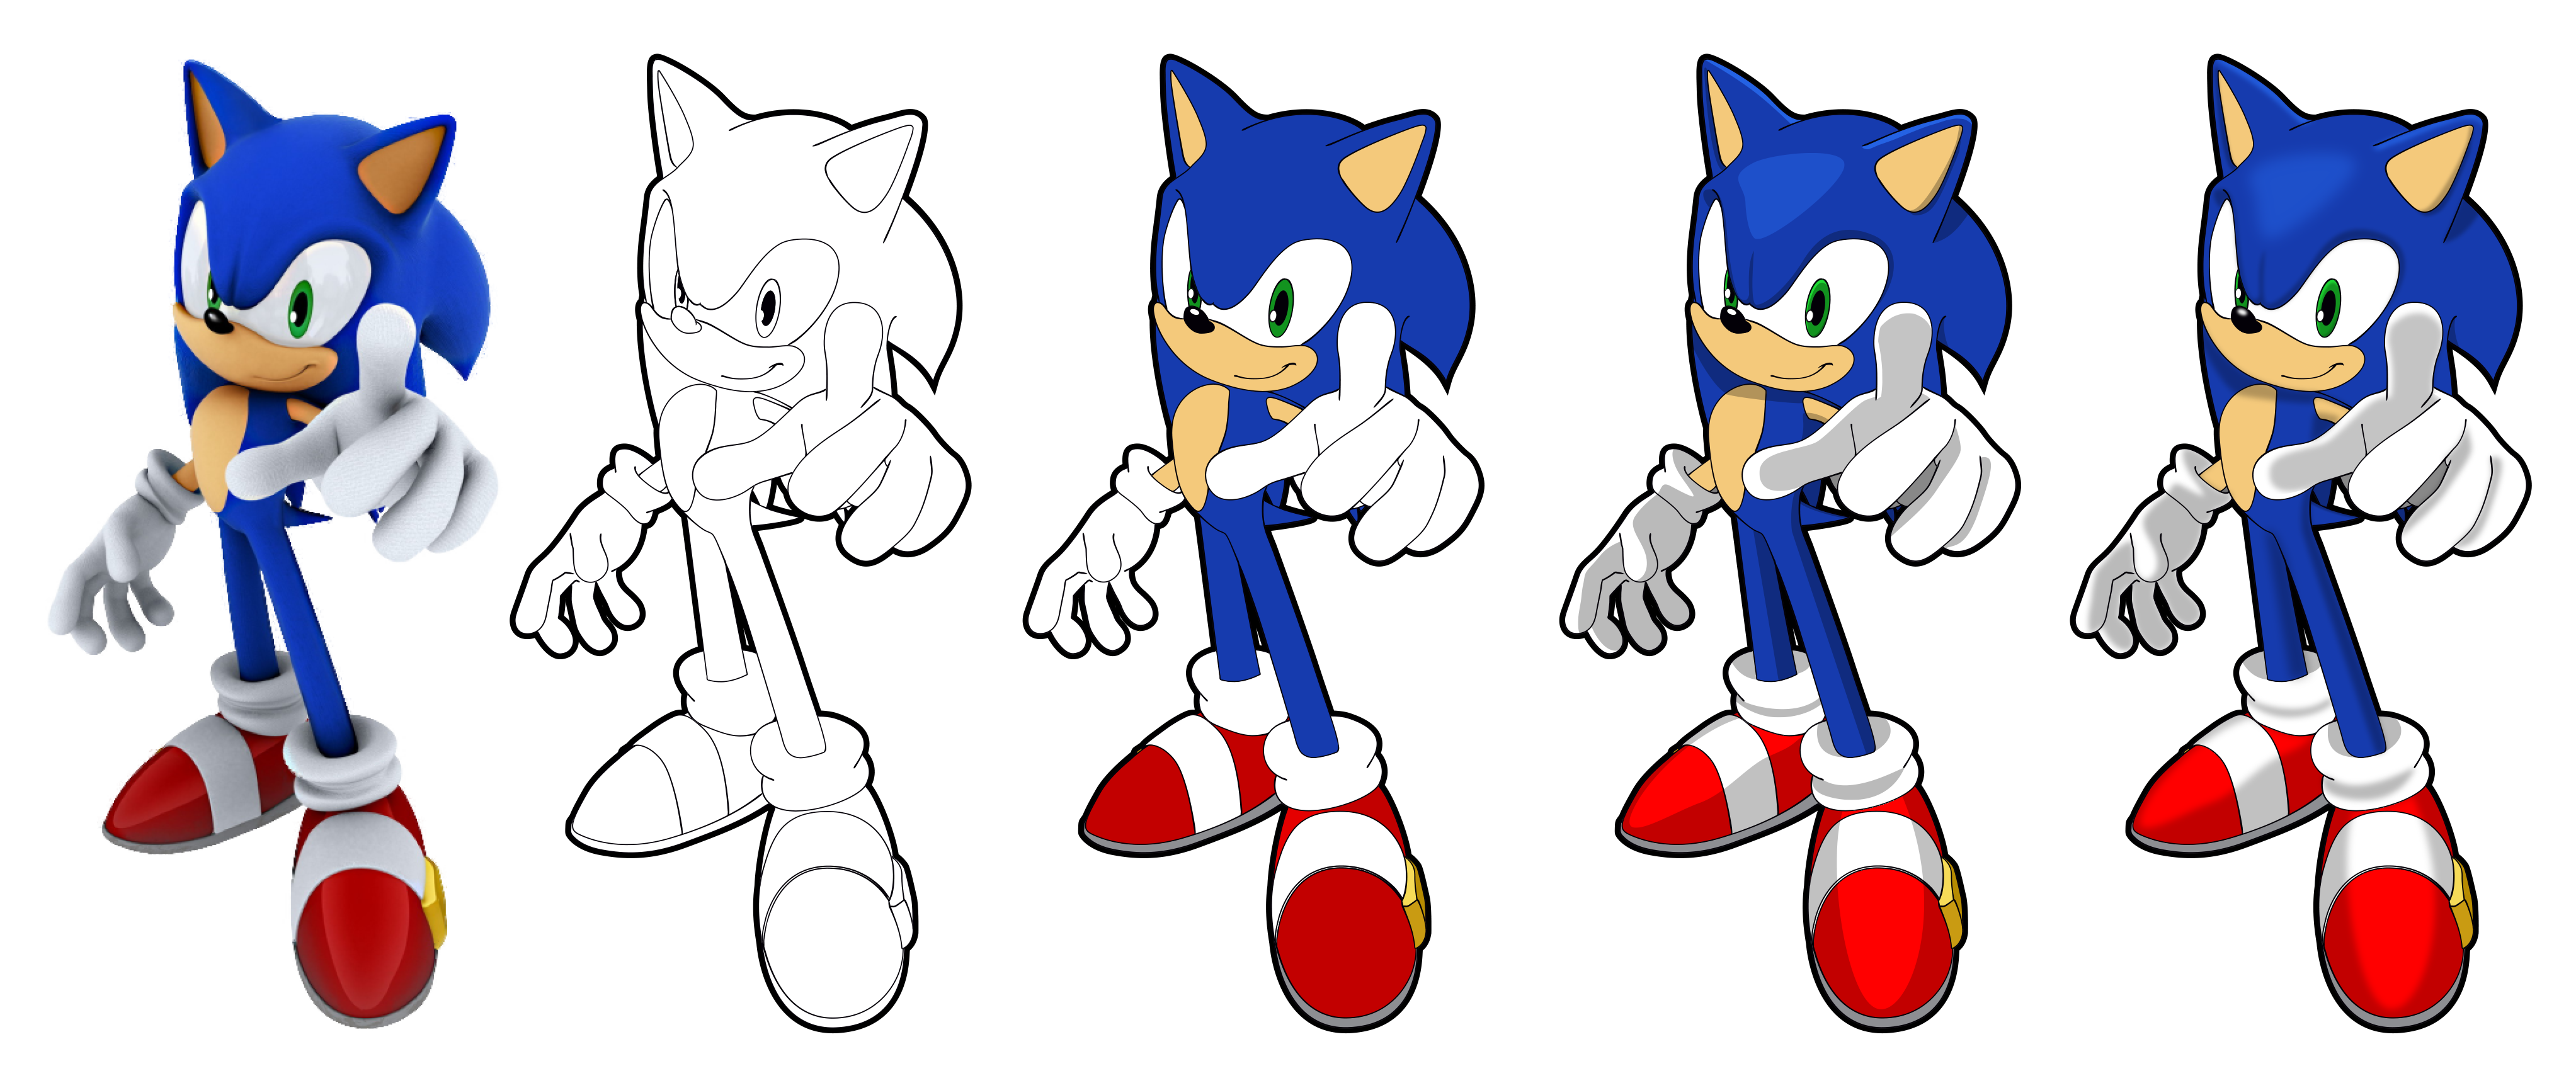 4090x1720 Sonic Vector Drawing By Juliannb4